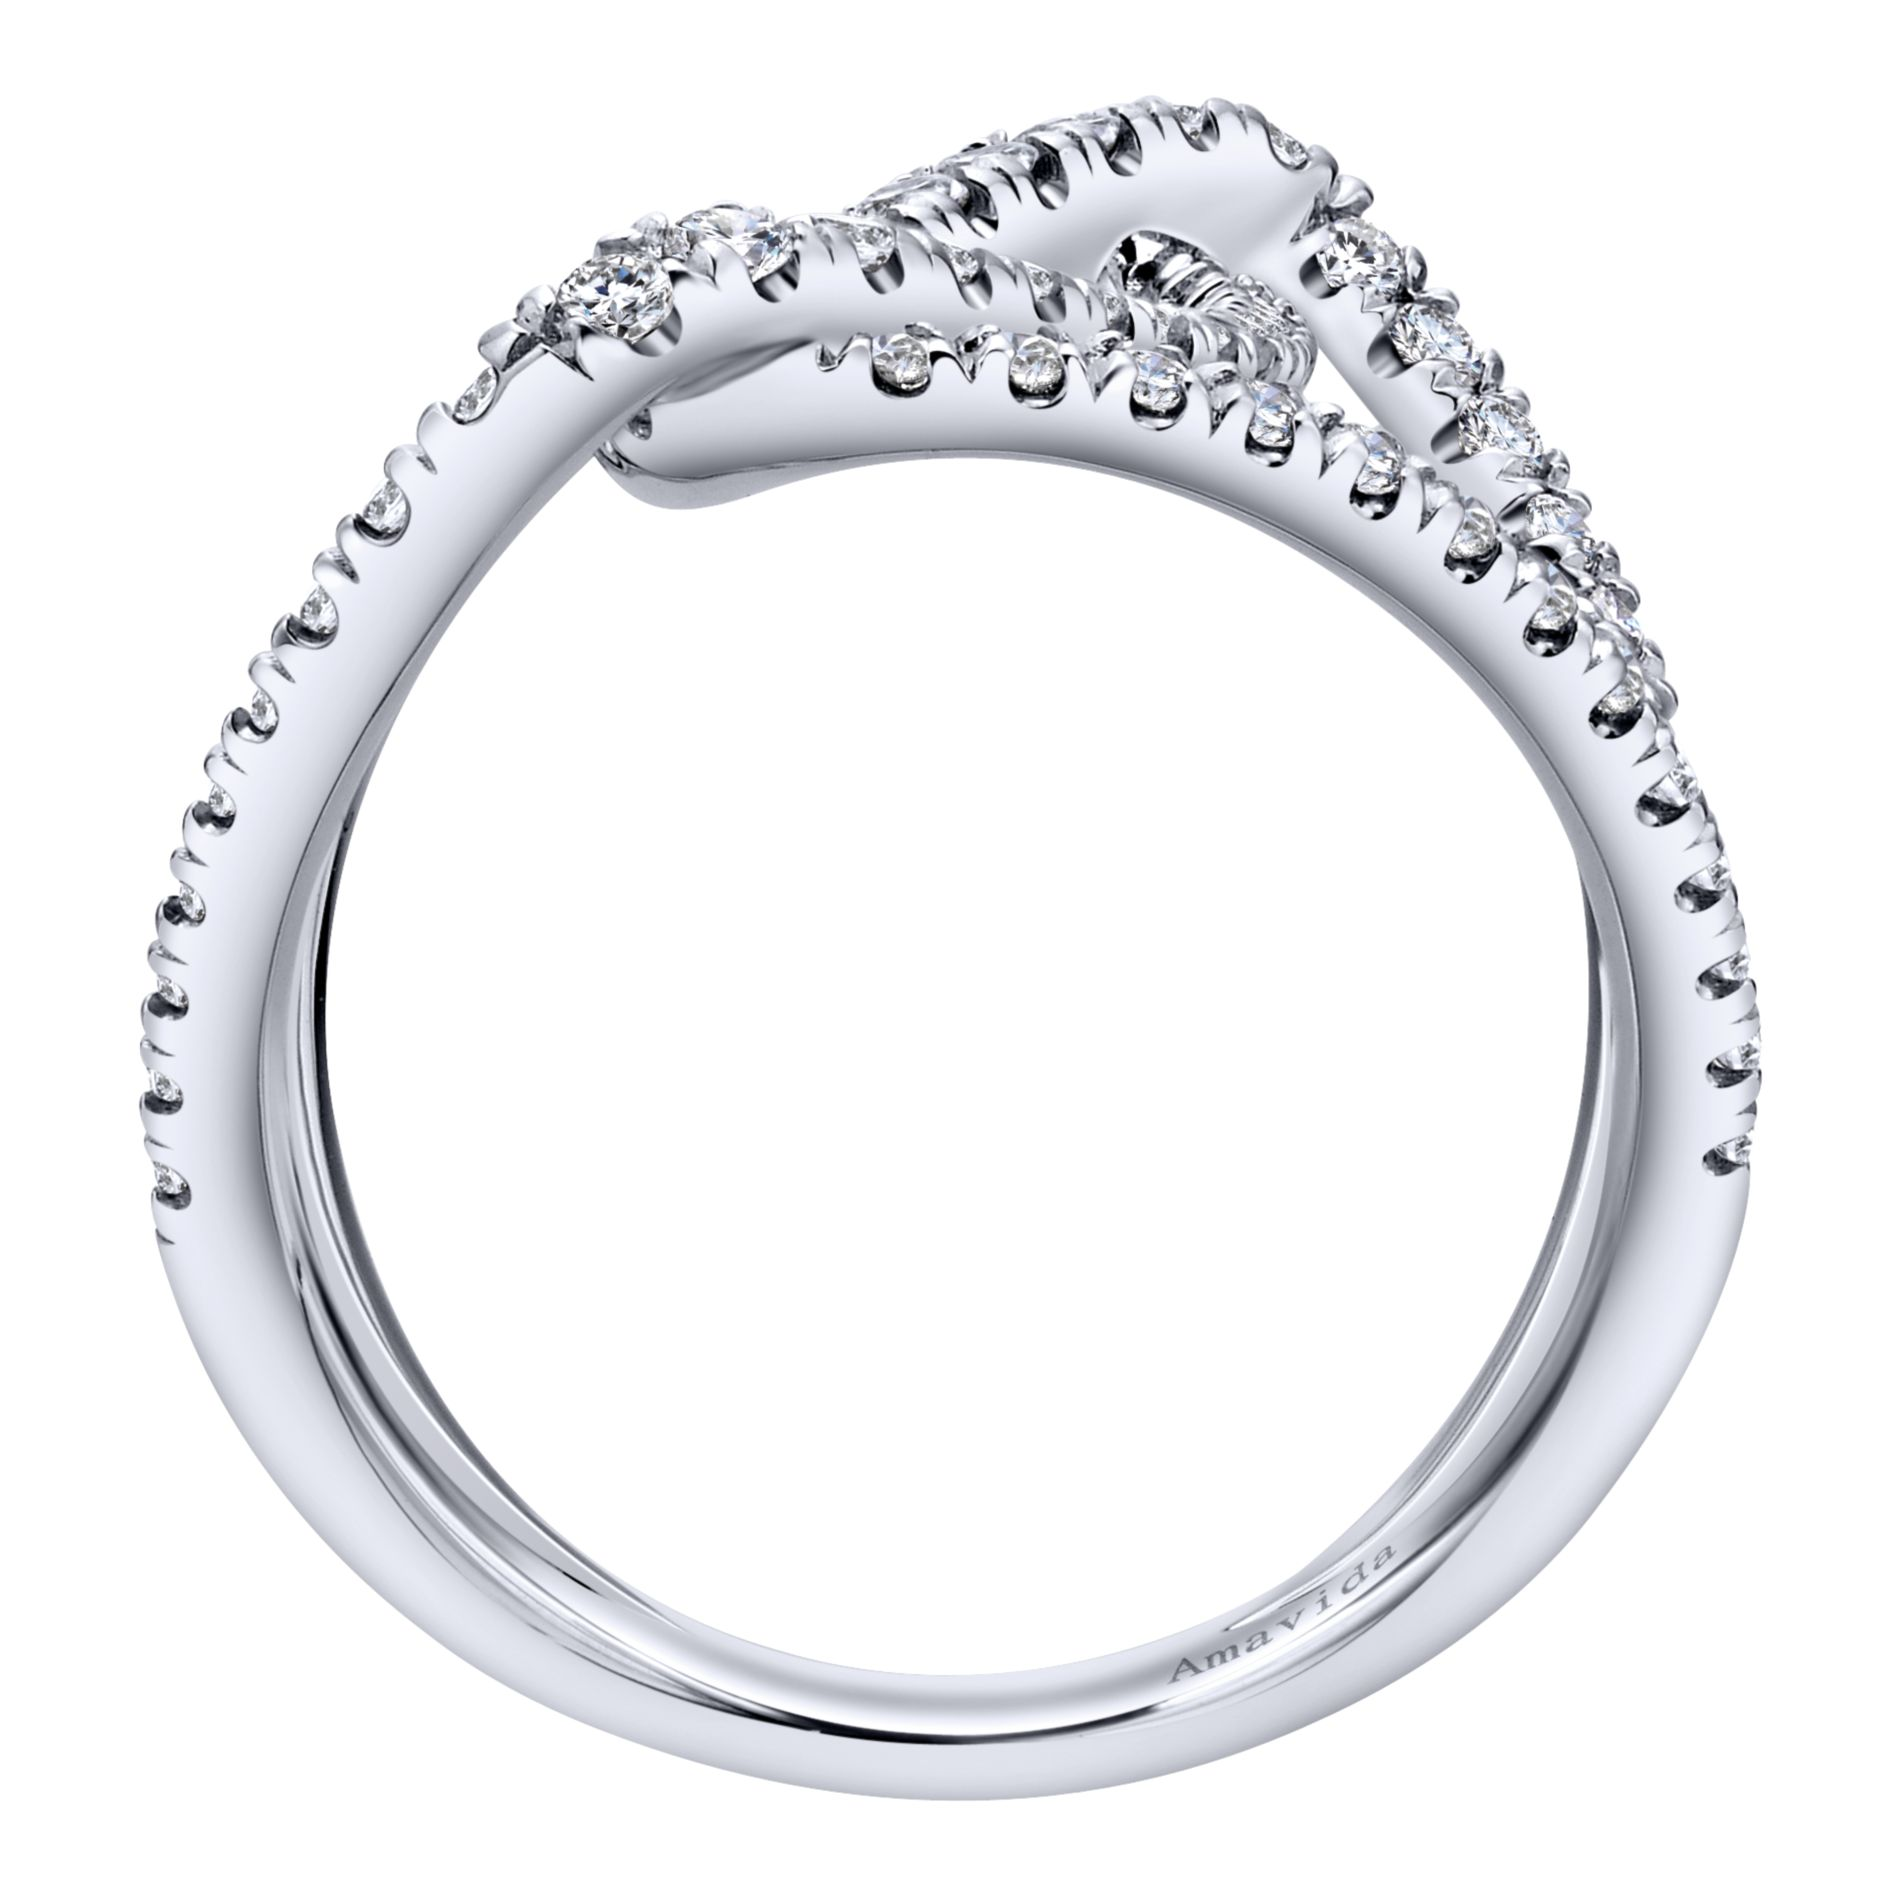 Rings - WHITE GOLD WIDE BAND DIAMOND LADIES RING - image #2